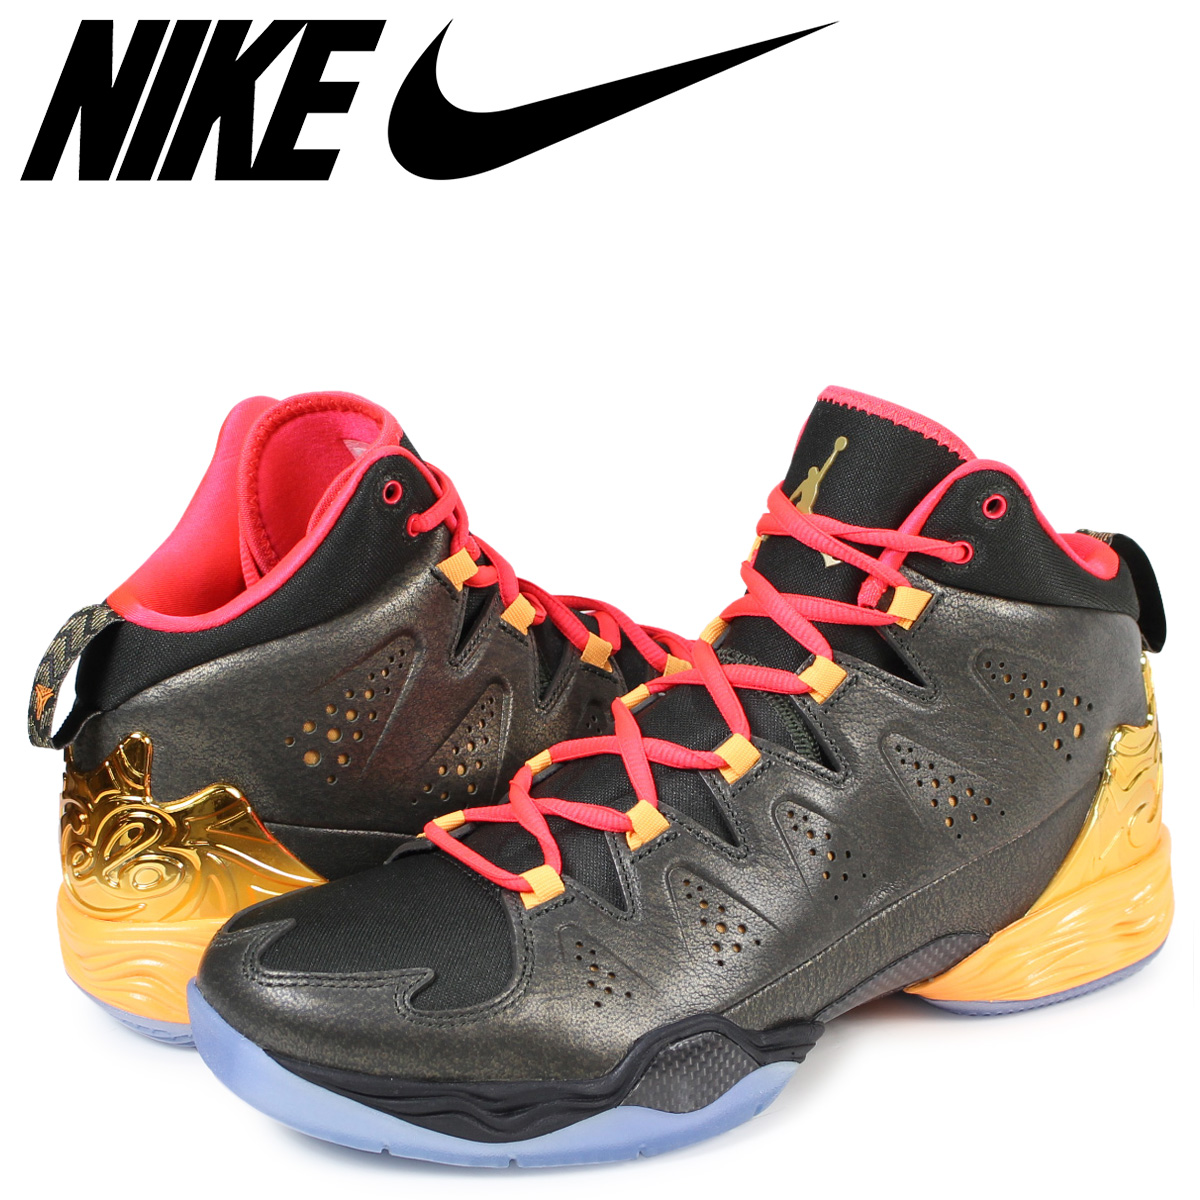 best sneakers 71b99 24cb5 ... promo code for nike jordan melo nike air jordan sneakers m10 jordan melo  656325 323 black